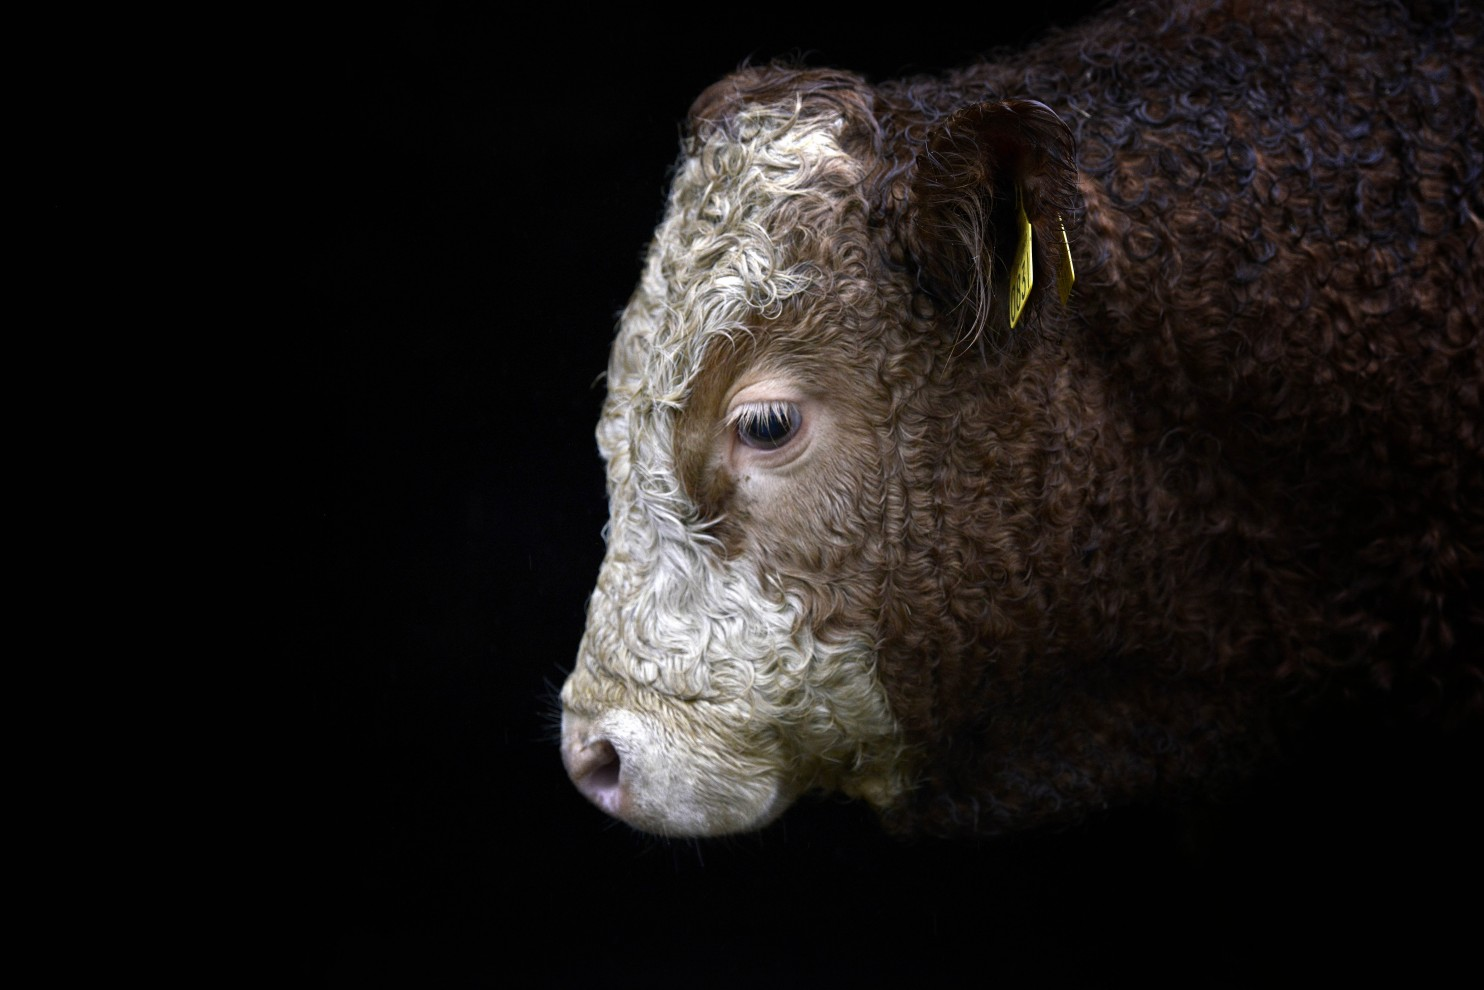 A grass-fed yearling bull. Experts differ over whether grass feeding is better than feedlots. (Charles McQuillan/Getty Images)